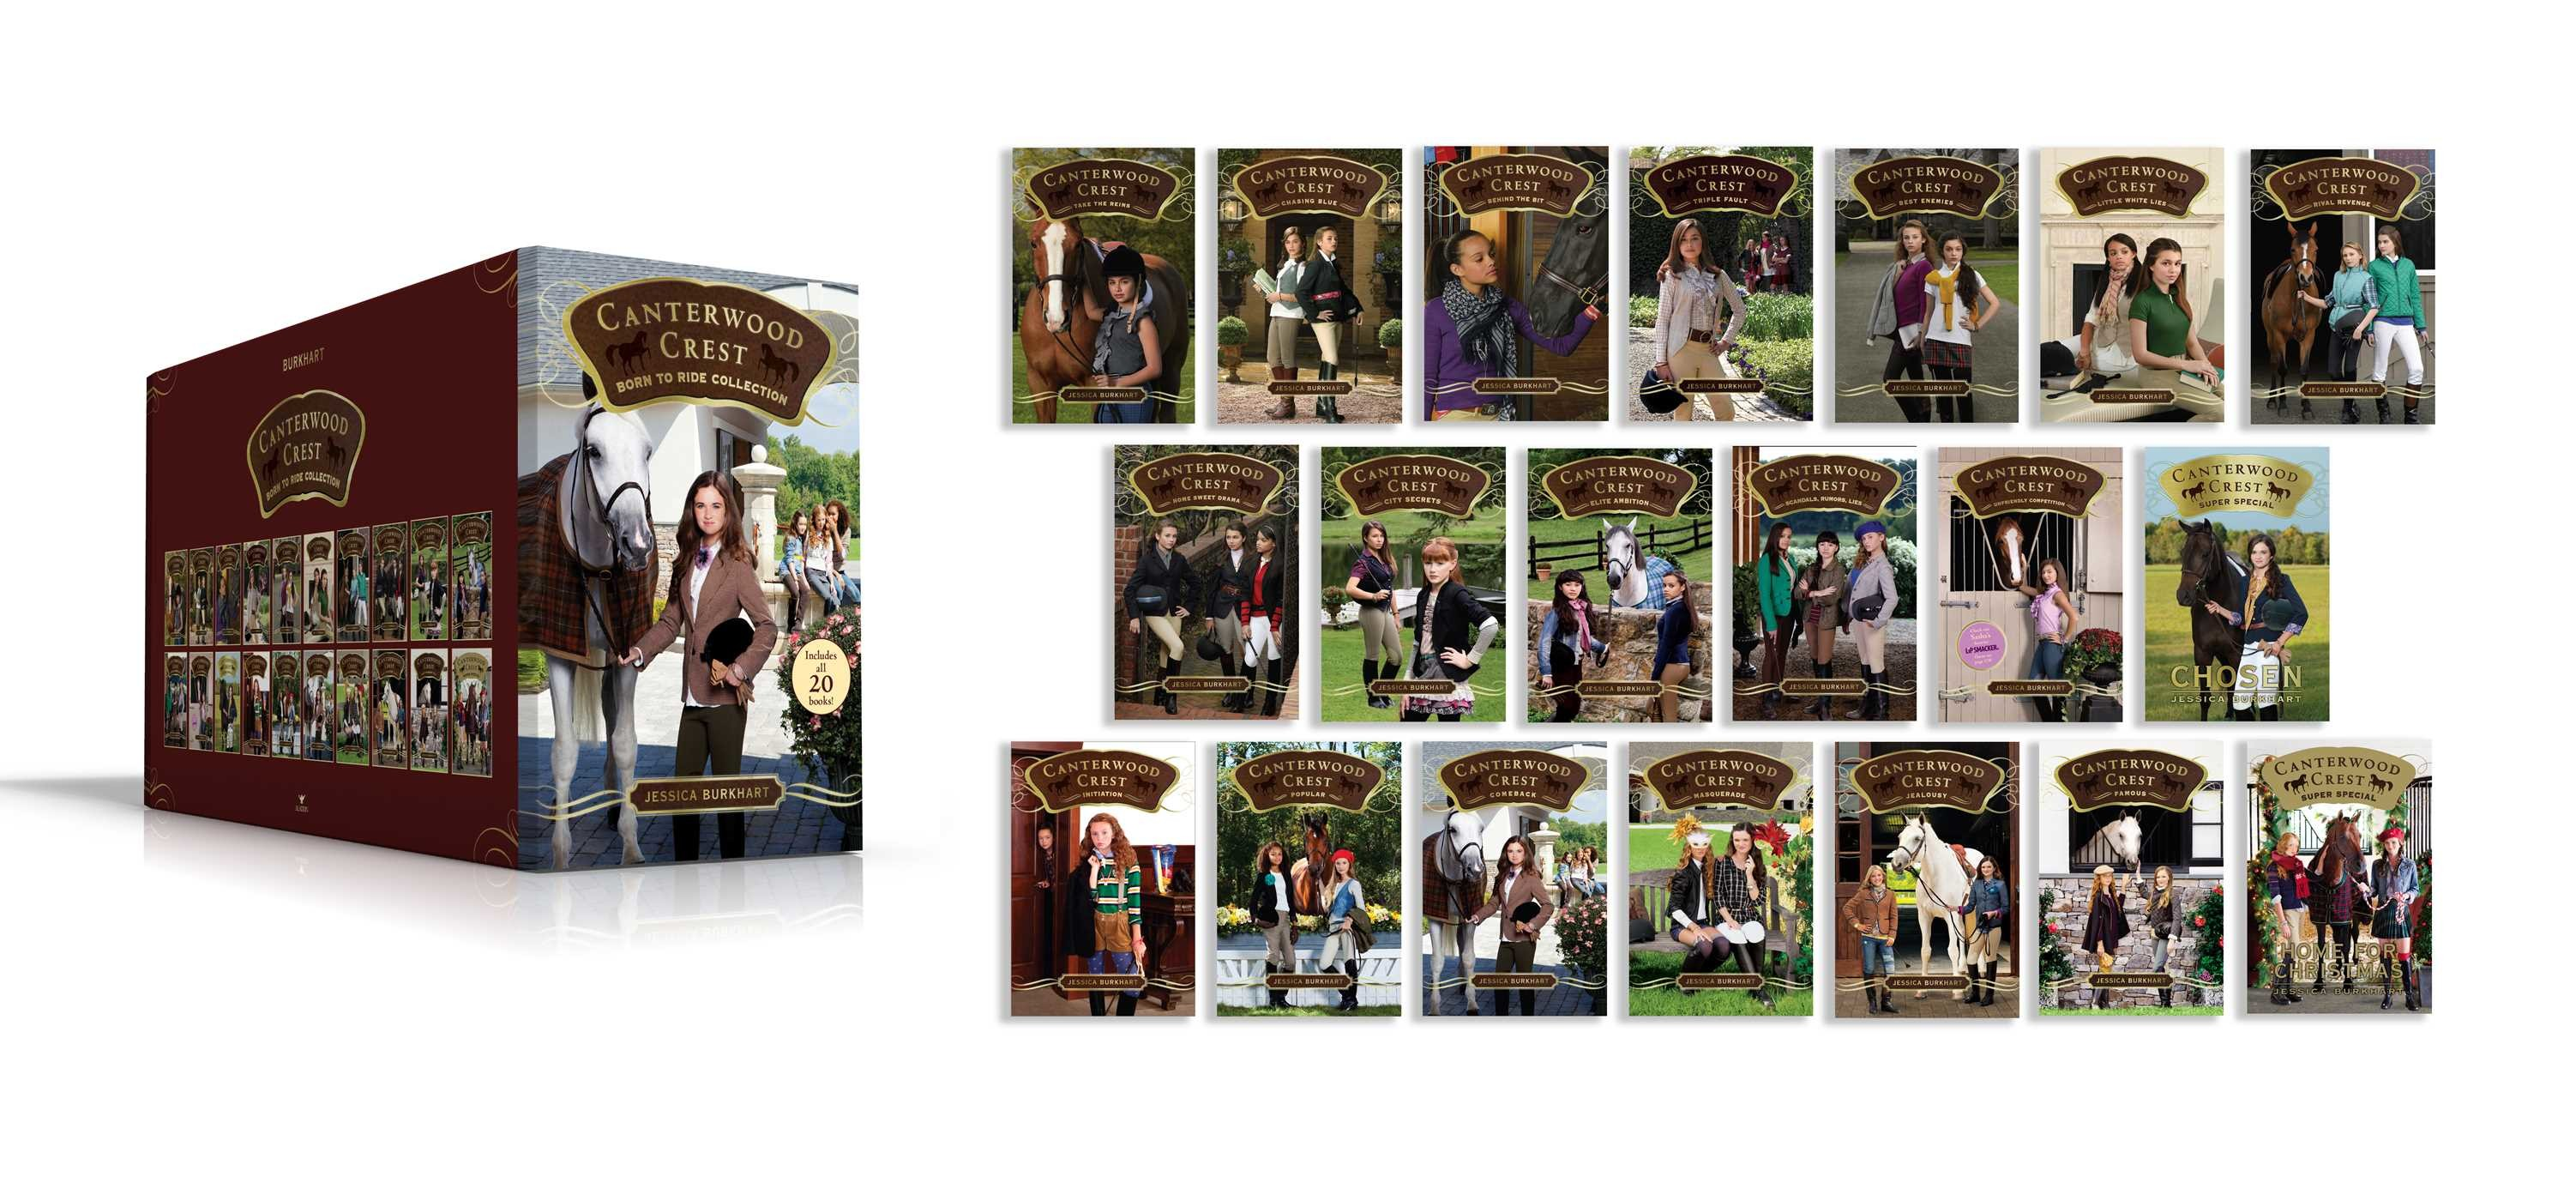 Canterwood crest born to ride collection 9781481496964.in01